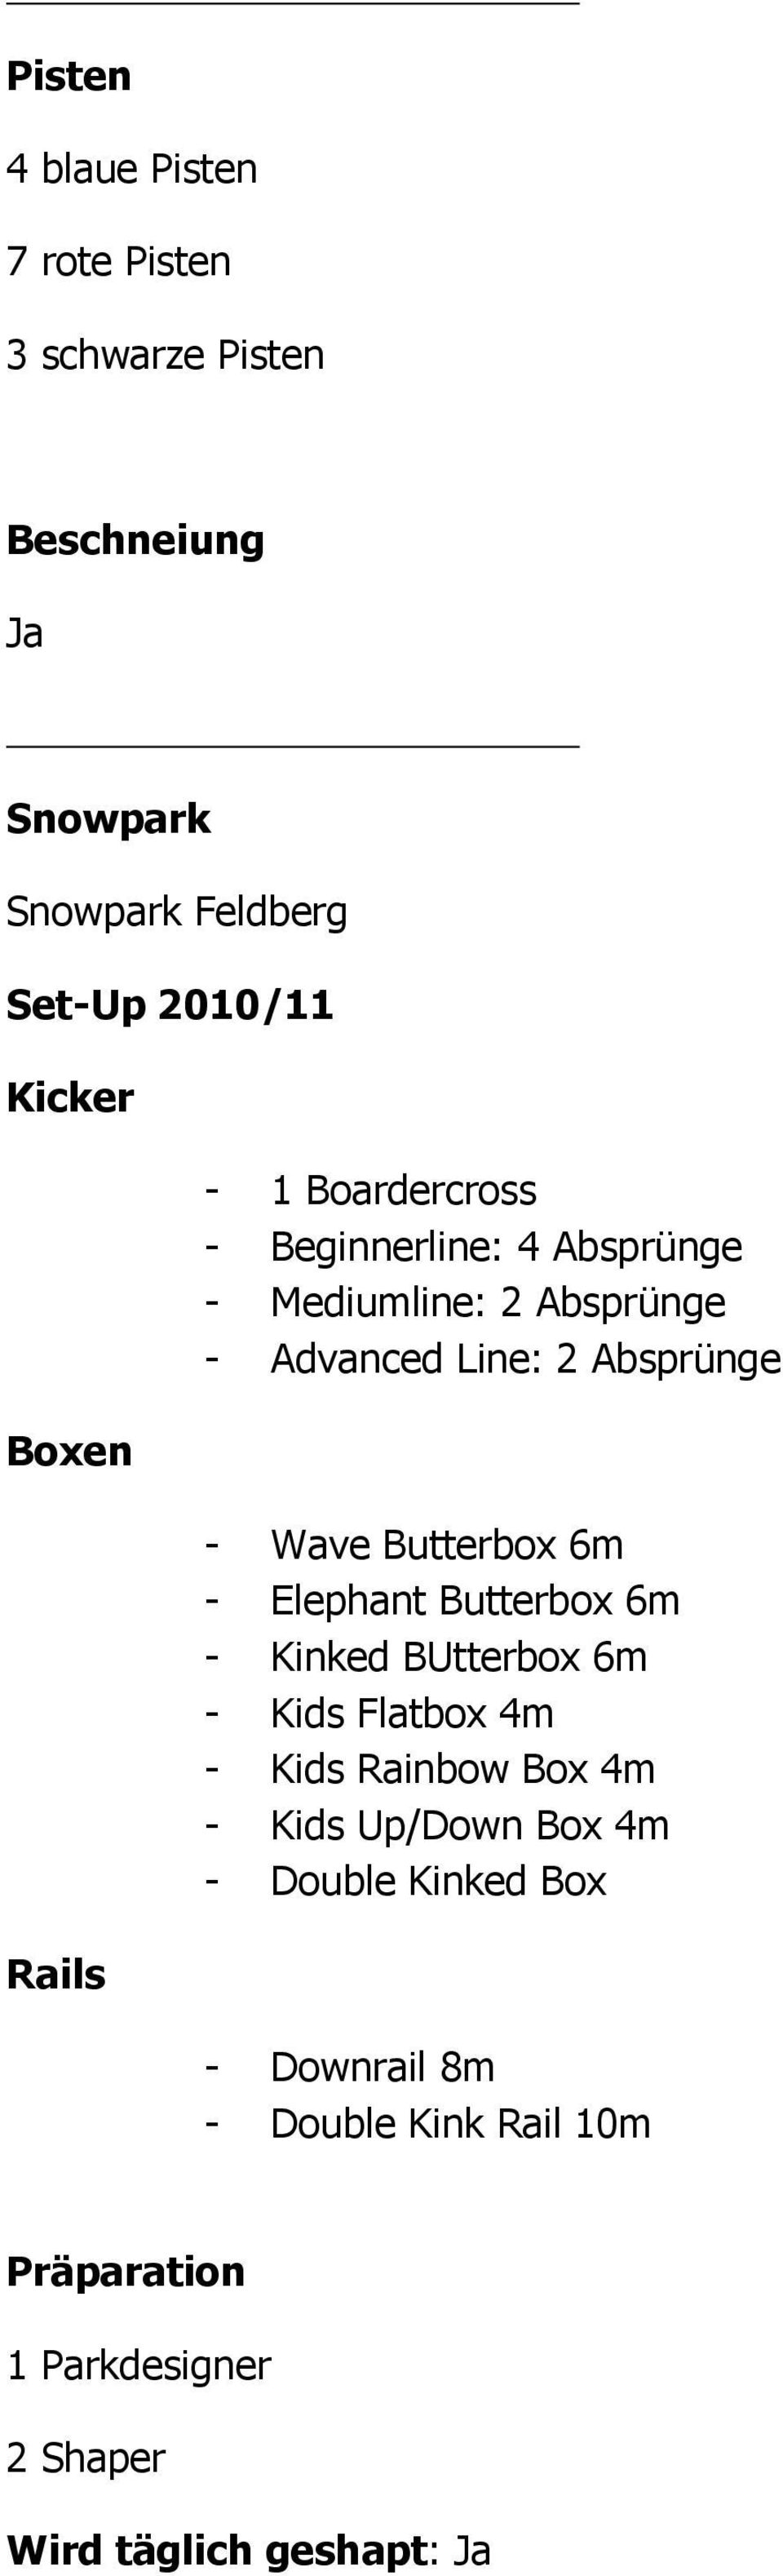 Butterbox 6m - Elephant Butterbox 6m - Kinked BUtterbox 6m - Kids Flatbox 4m - Kids Rainbow Box 4m - Kids Up/Down Box